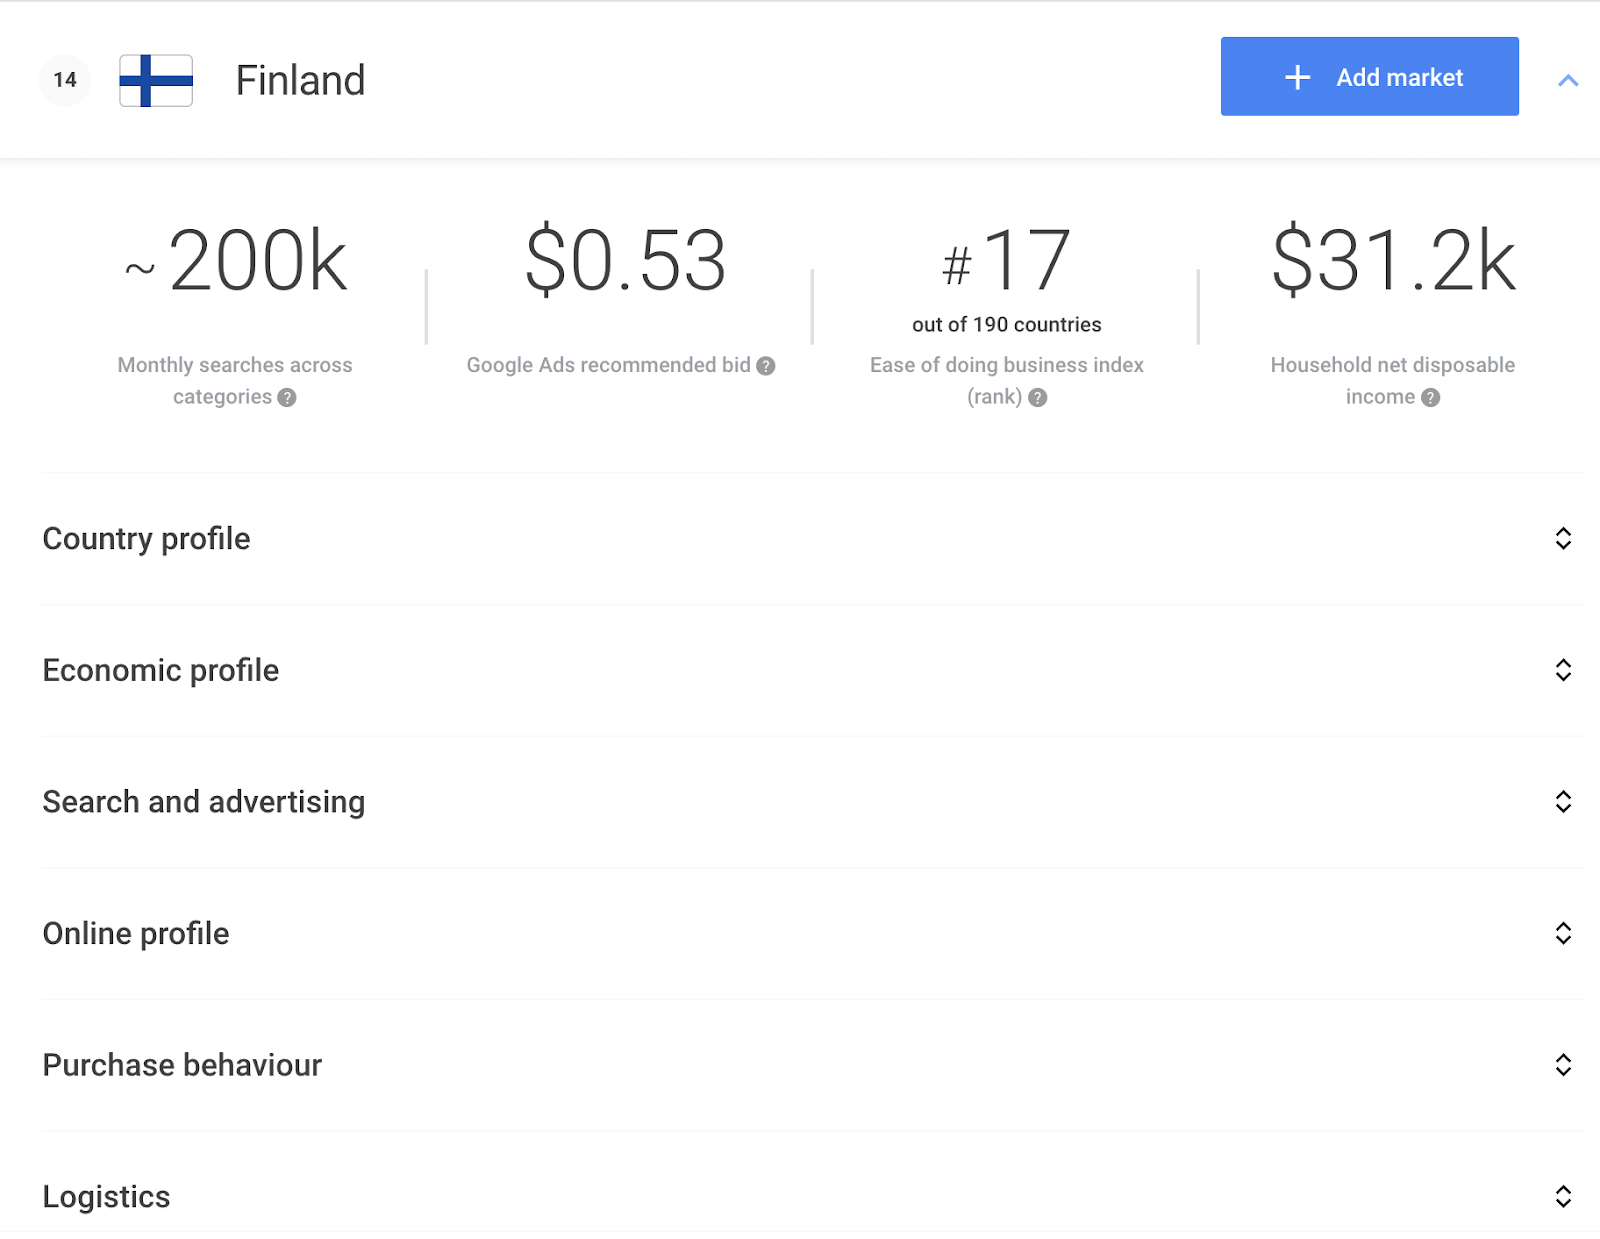 Google Market Finder results 5 tips for companies looking to succeed with multilingual PPC campaigns – How Google Tools can help you export internationally BLOG2